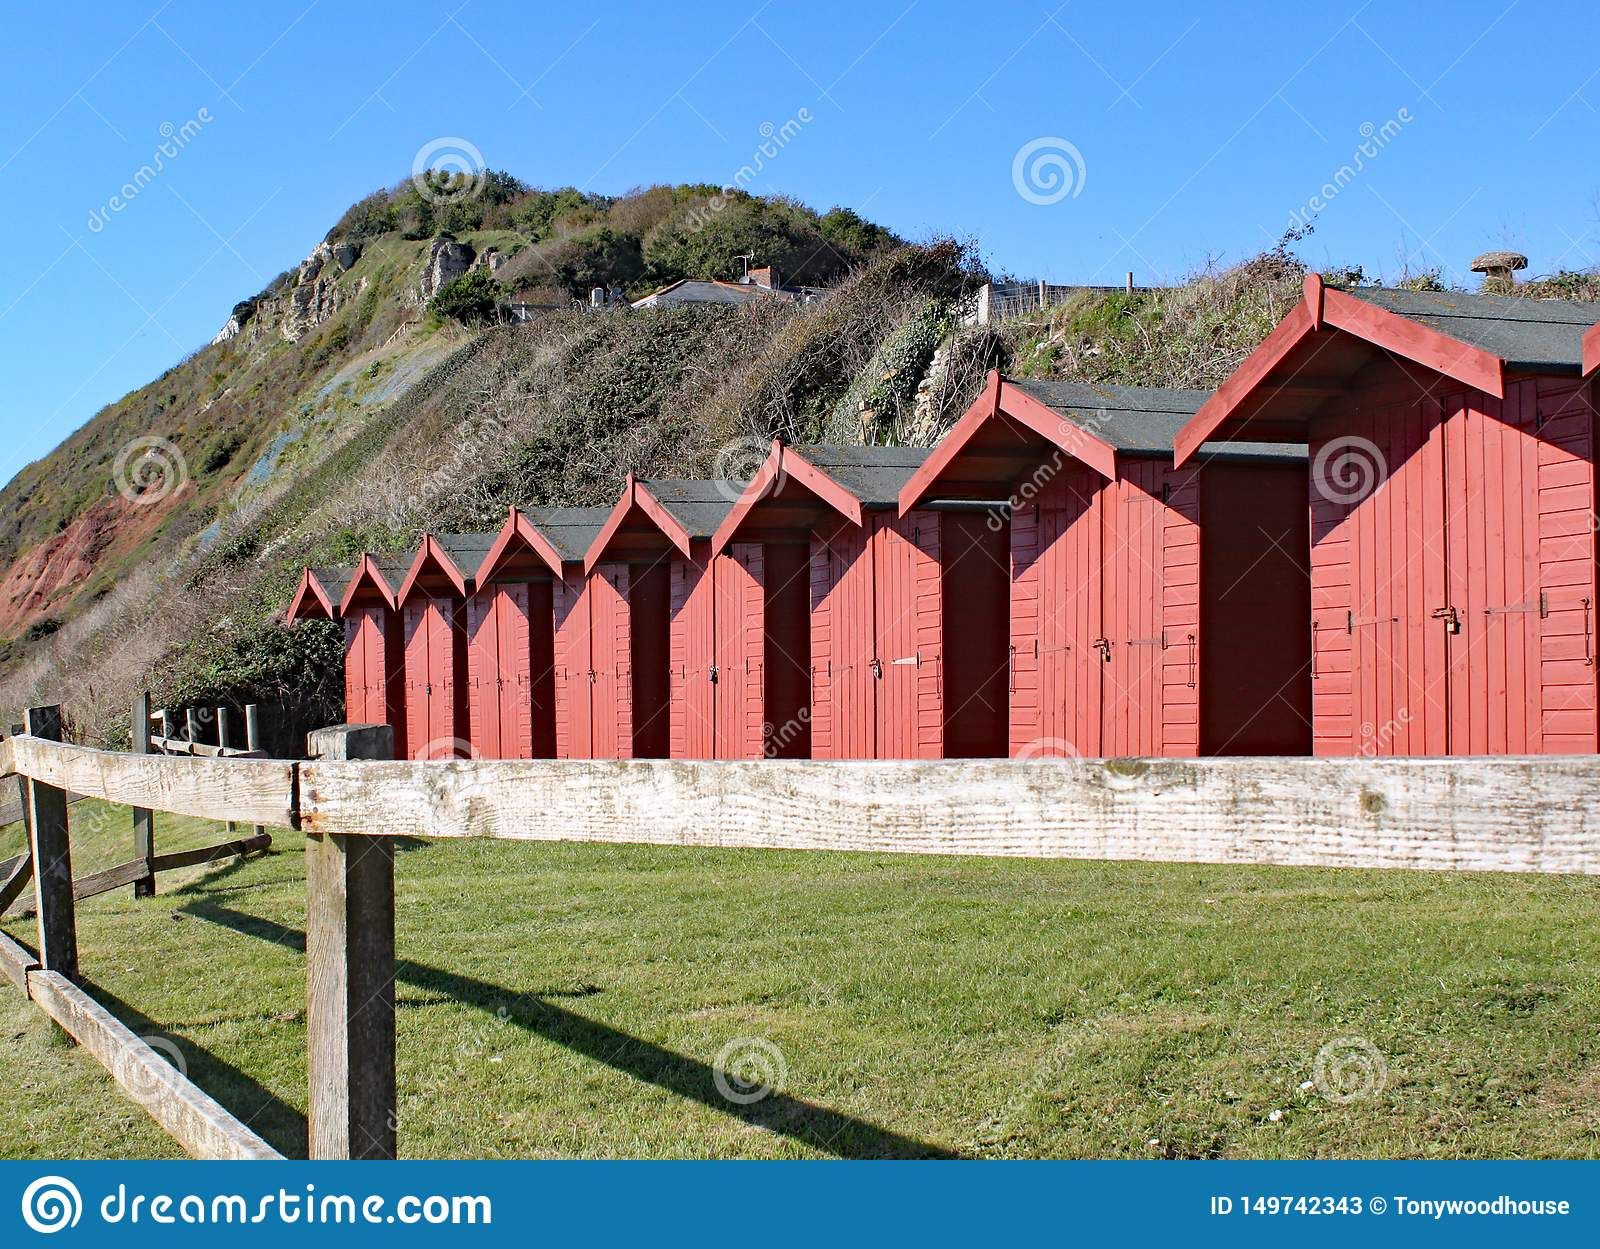 A row of beach huts on the shingle beach at Branscome in Devon, England